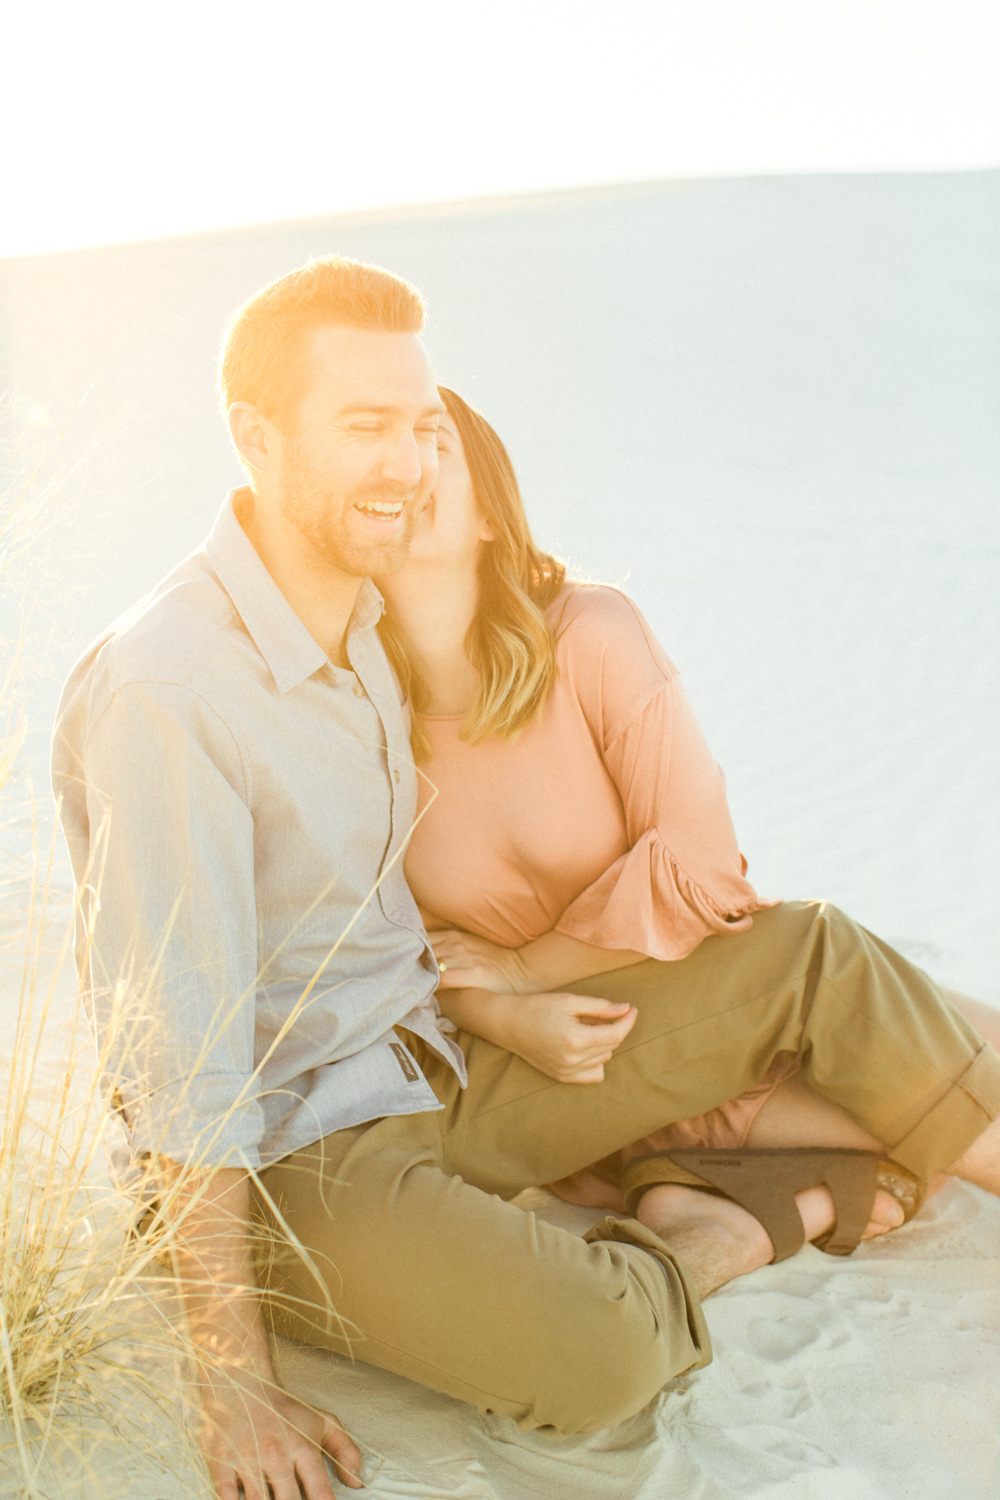 Guy laughing during engagement session in white sands, New Mexico.